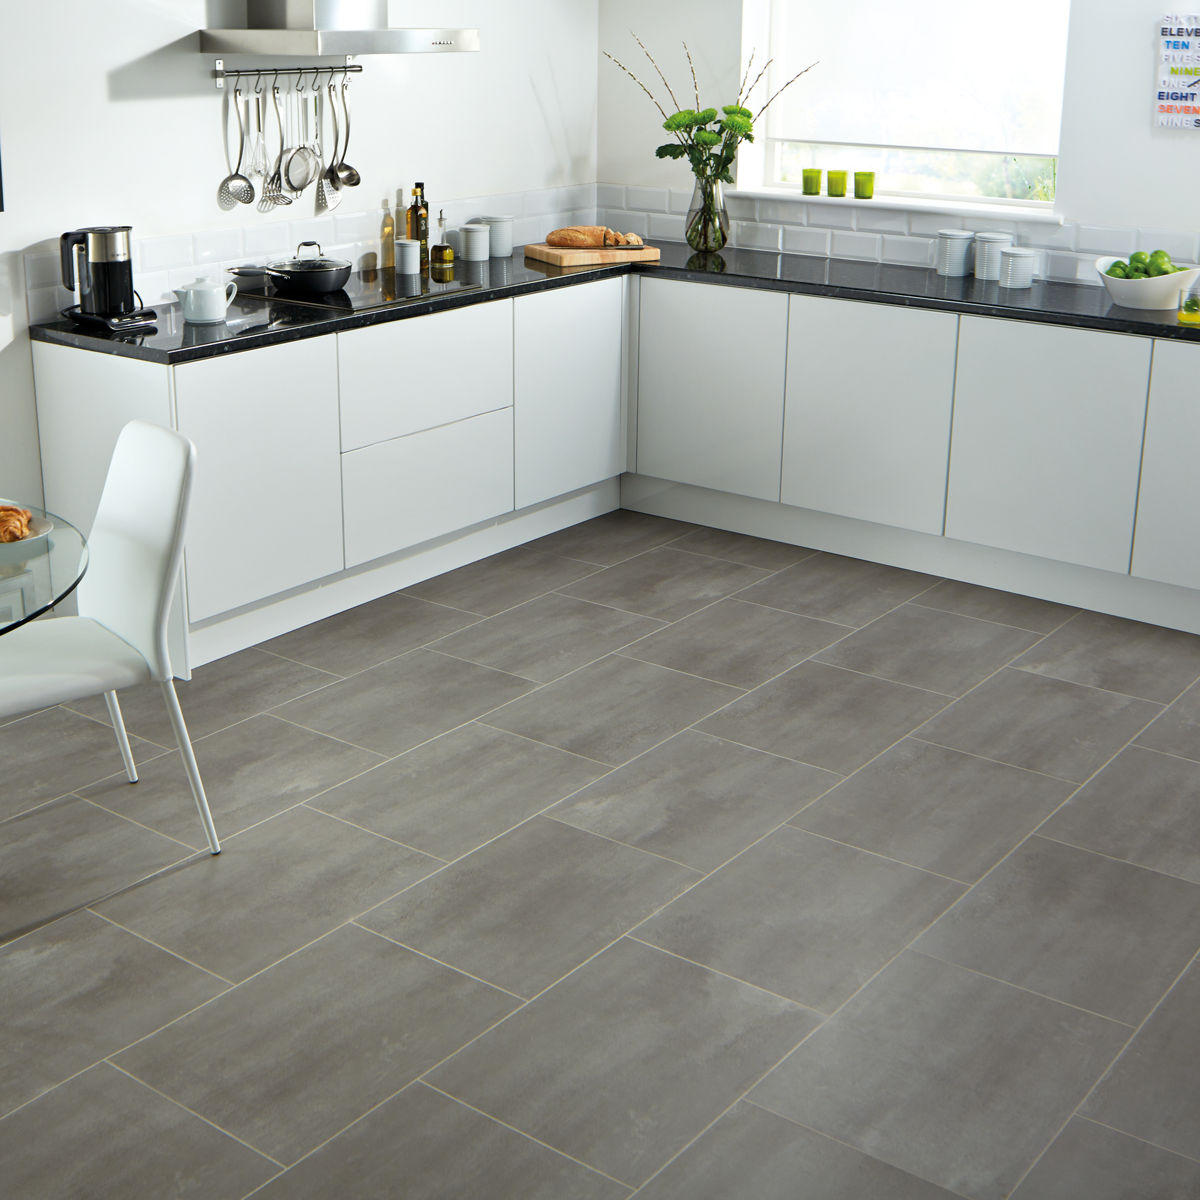 Karndean opus urbus sp213 vinyl flooring for Vinyl tiles for kitchen